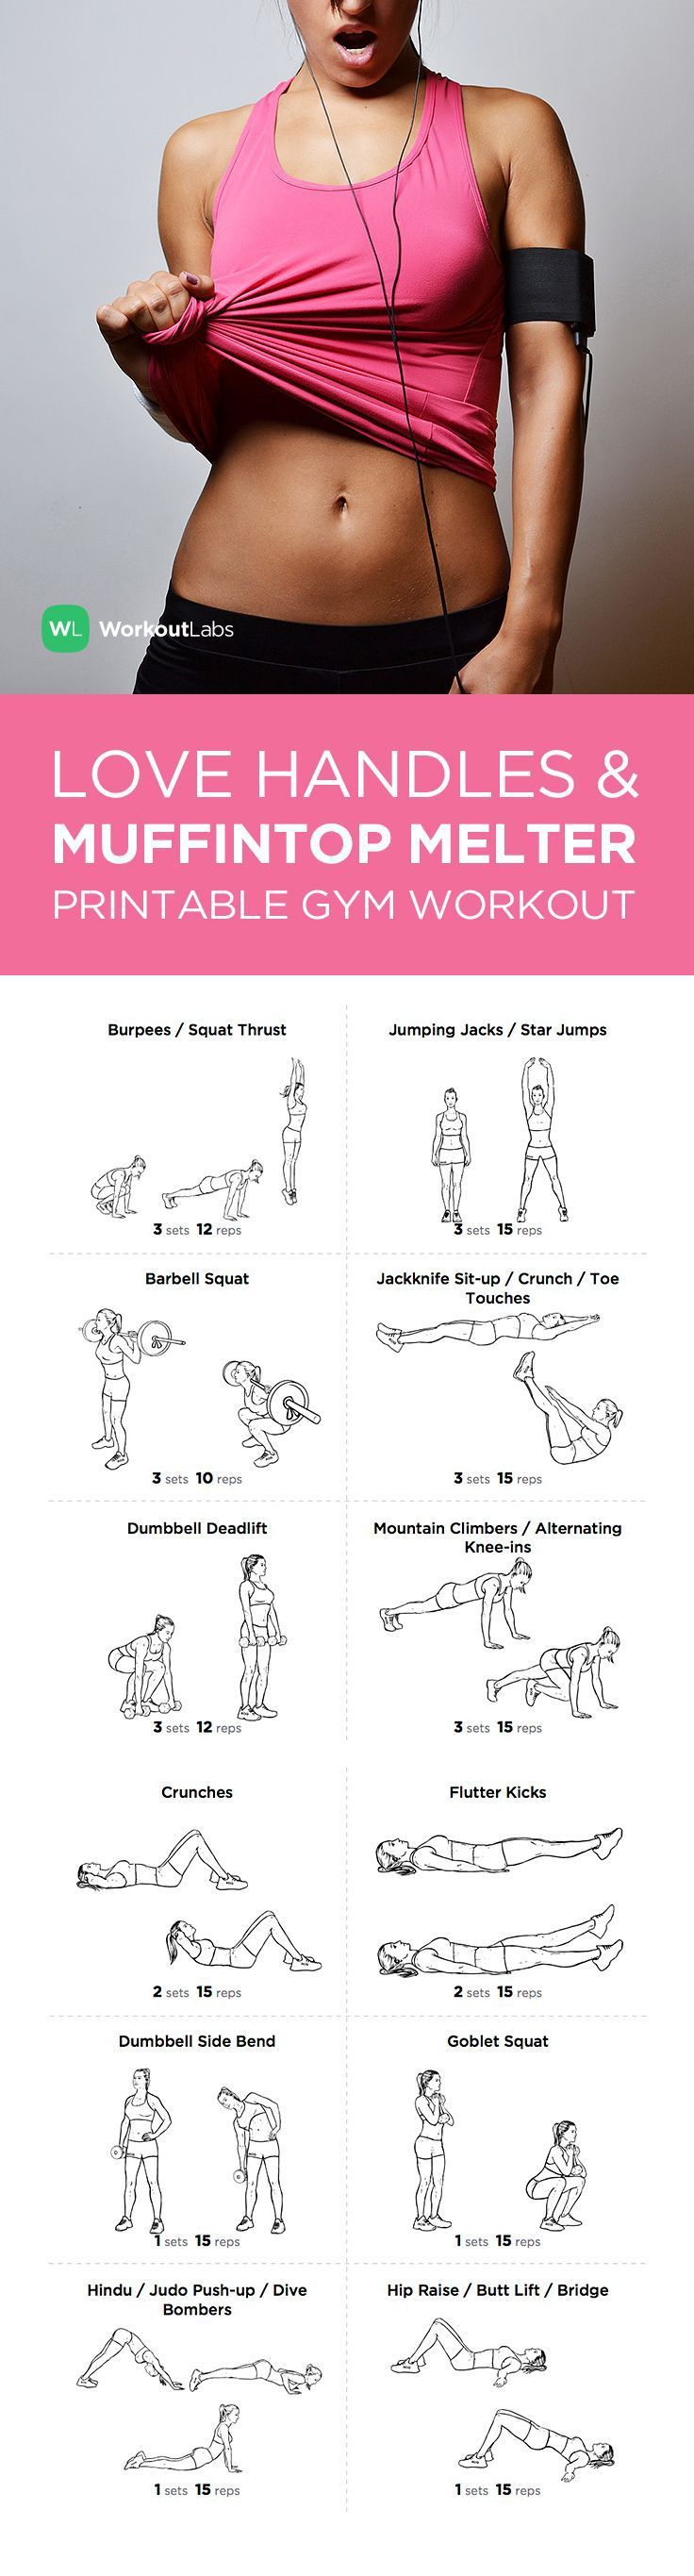 Love Handles Muffin Top Melter Printable Gym Workout For Women